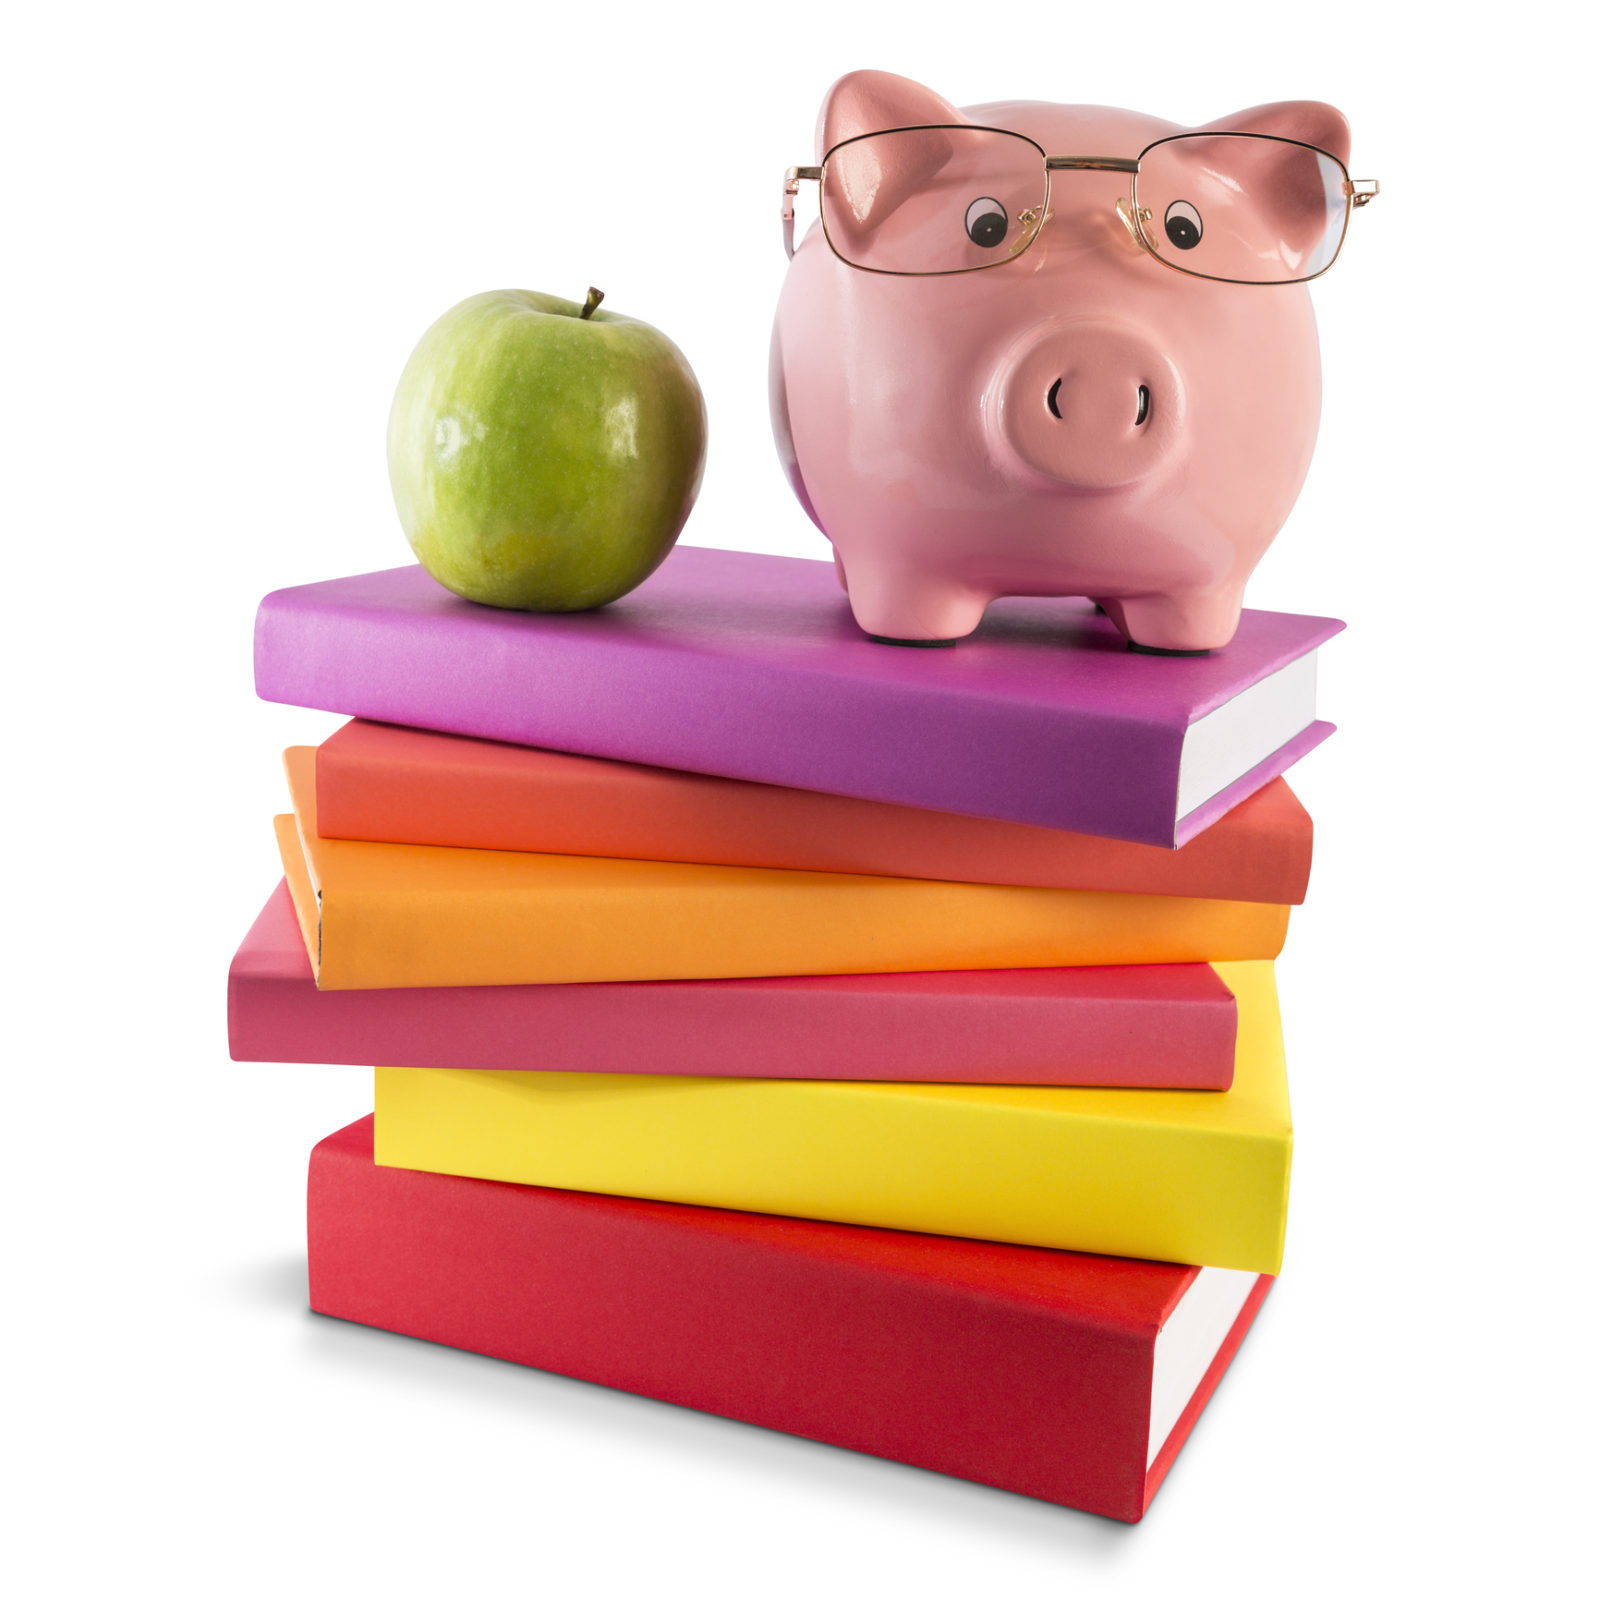 A piggy bank wearing reading glasses sits near a green apple on top of a stack of multi colored books. For educational, children and school purposes, the abstract image is isolated on a white background and contains a clipping path to easily make a selection of the image and use separately as a design element.